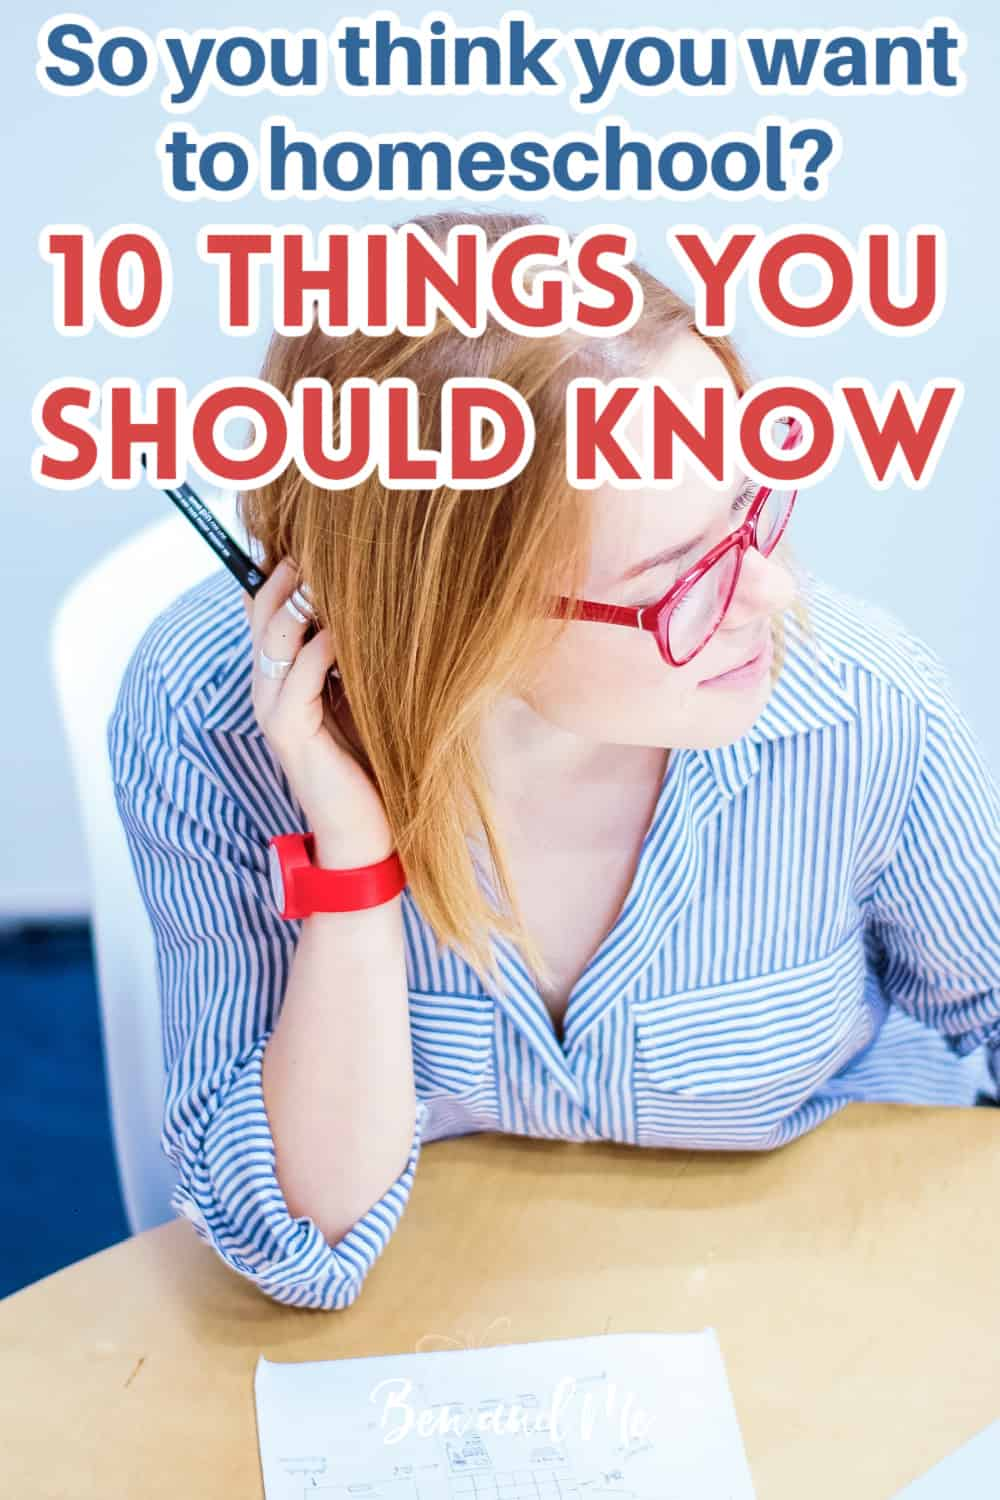 10 things you should know if you think you want to homeschool